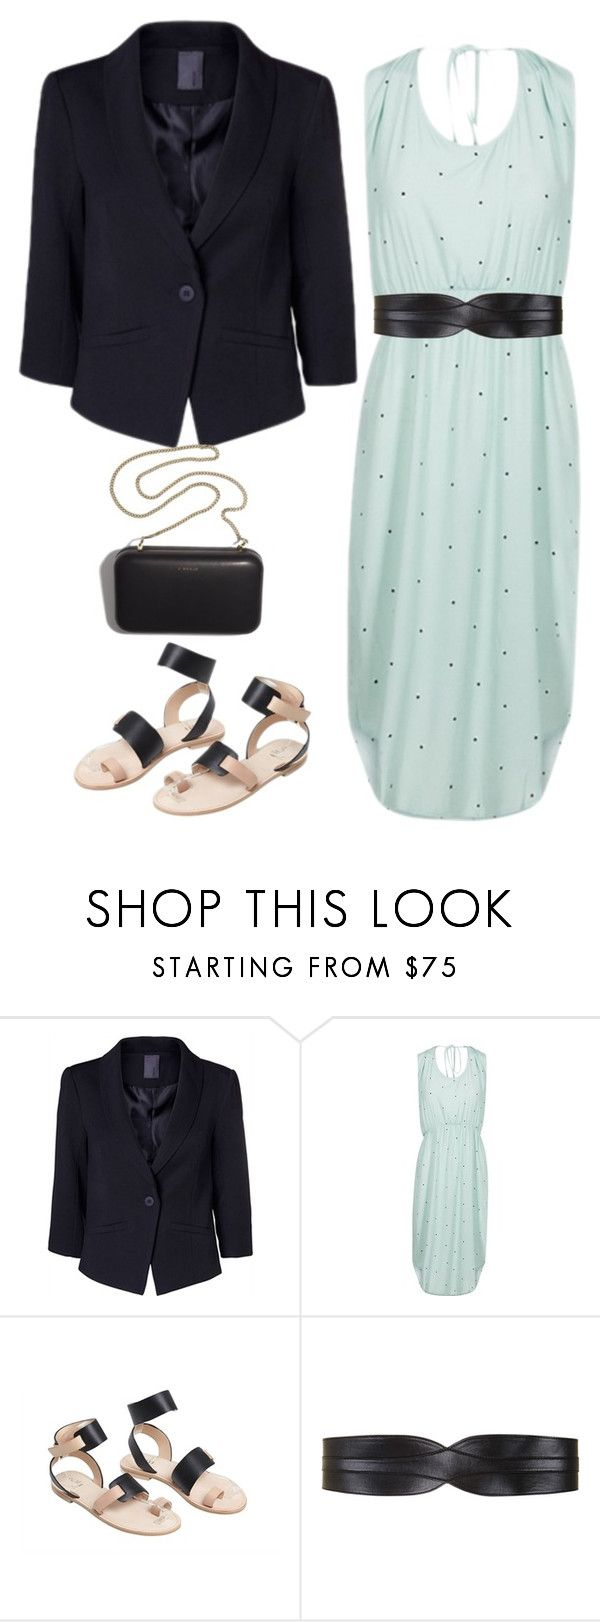 """""""bryllupsoutfit3"""" by caterinamaria on Polyvore featuring Jakke, BCBGMAXAZRIA and Clare V."""